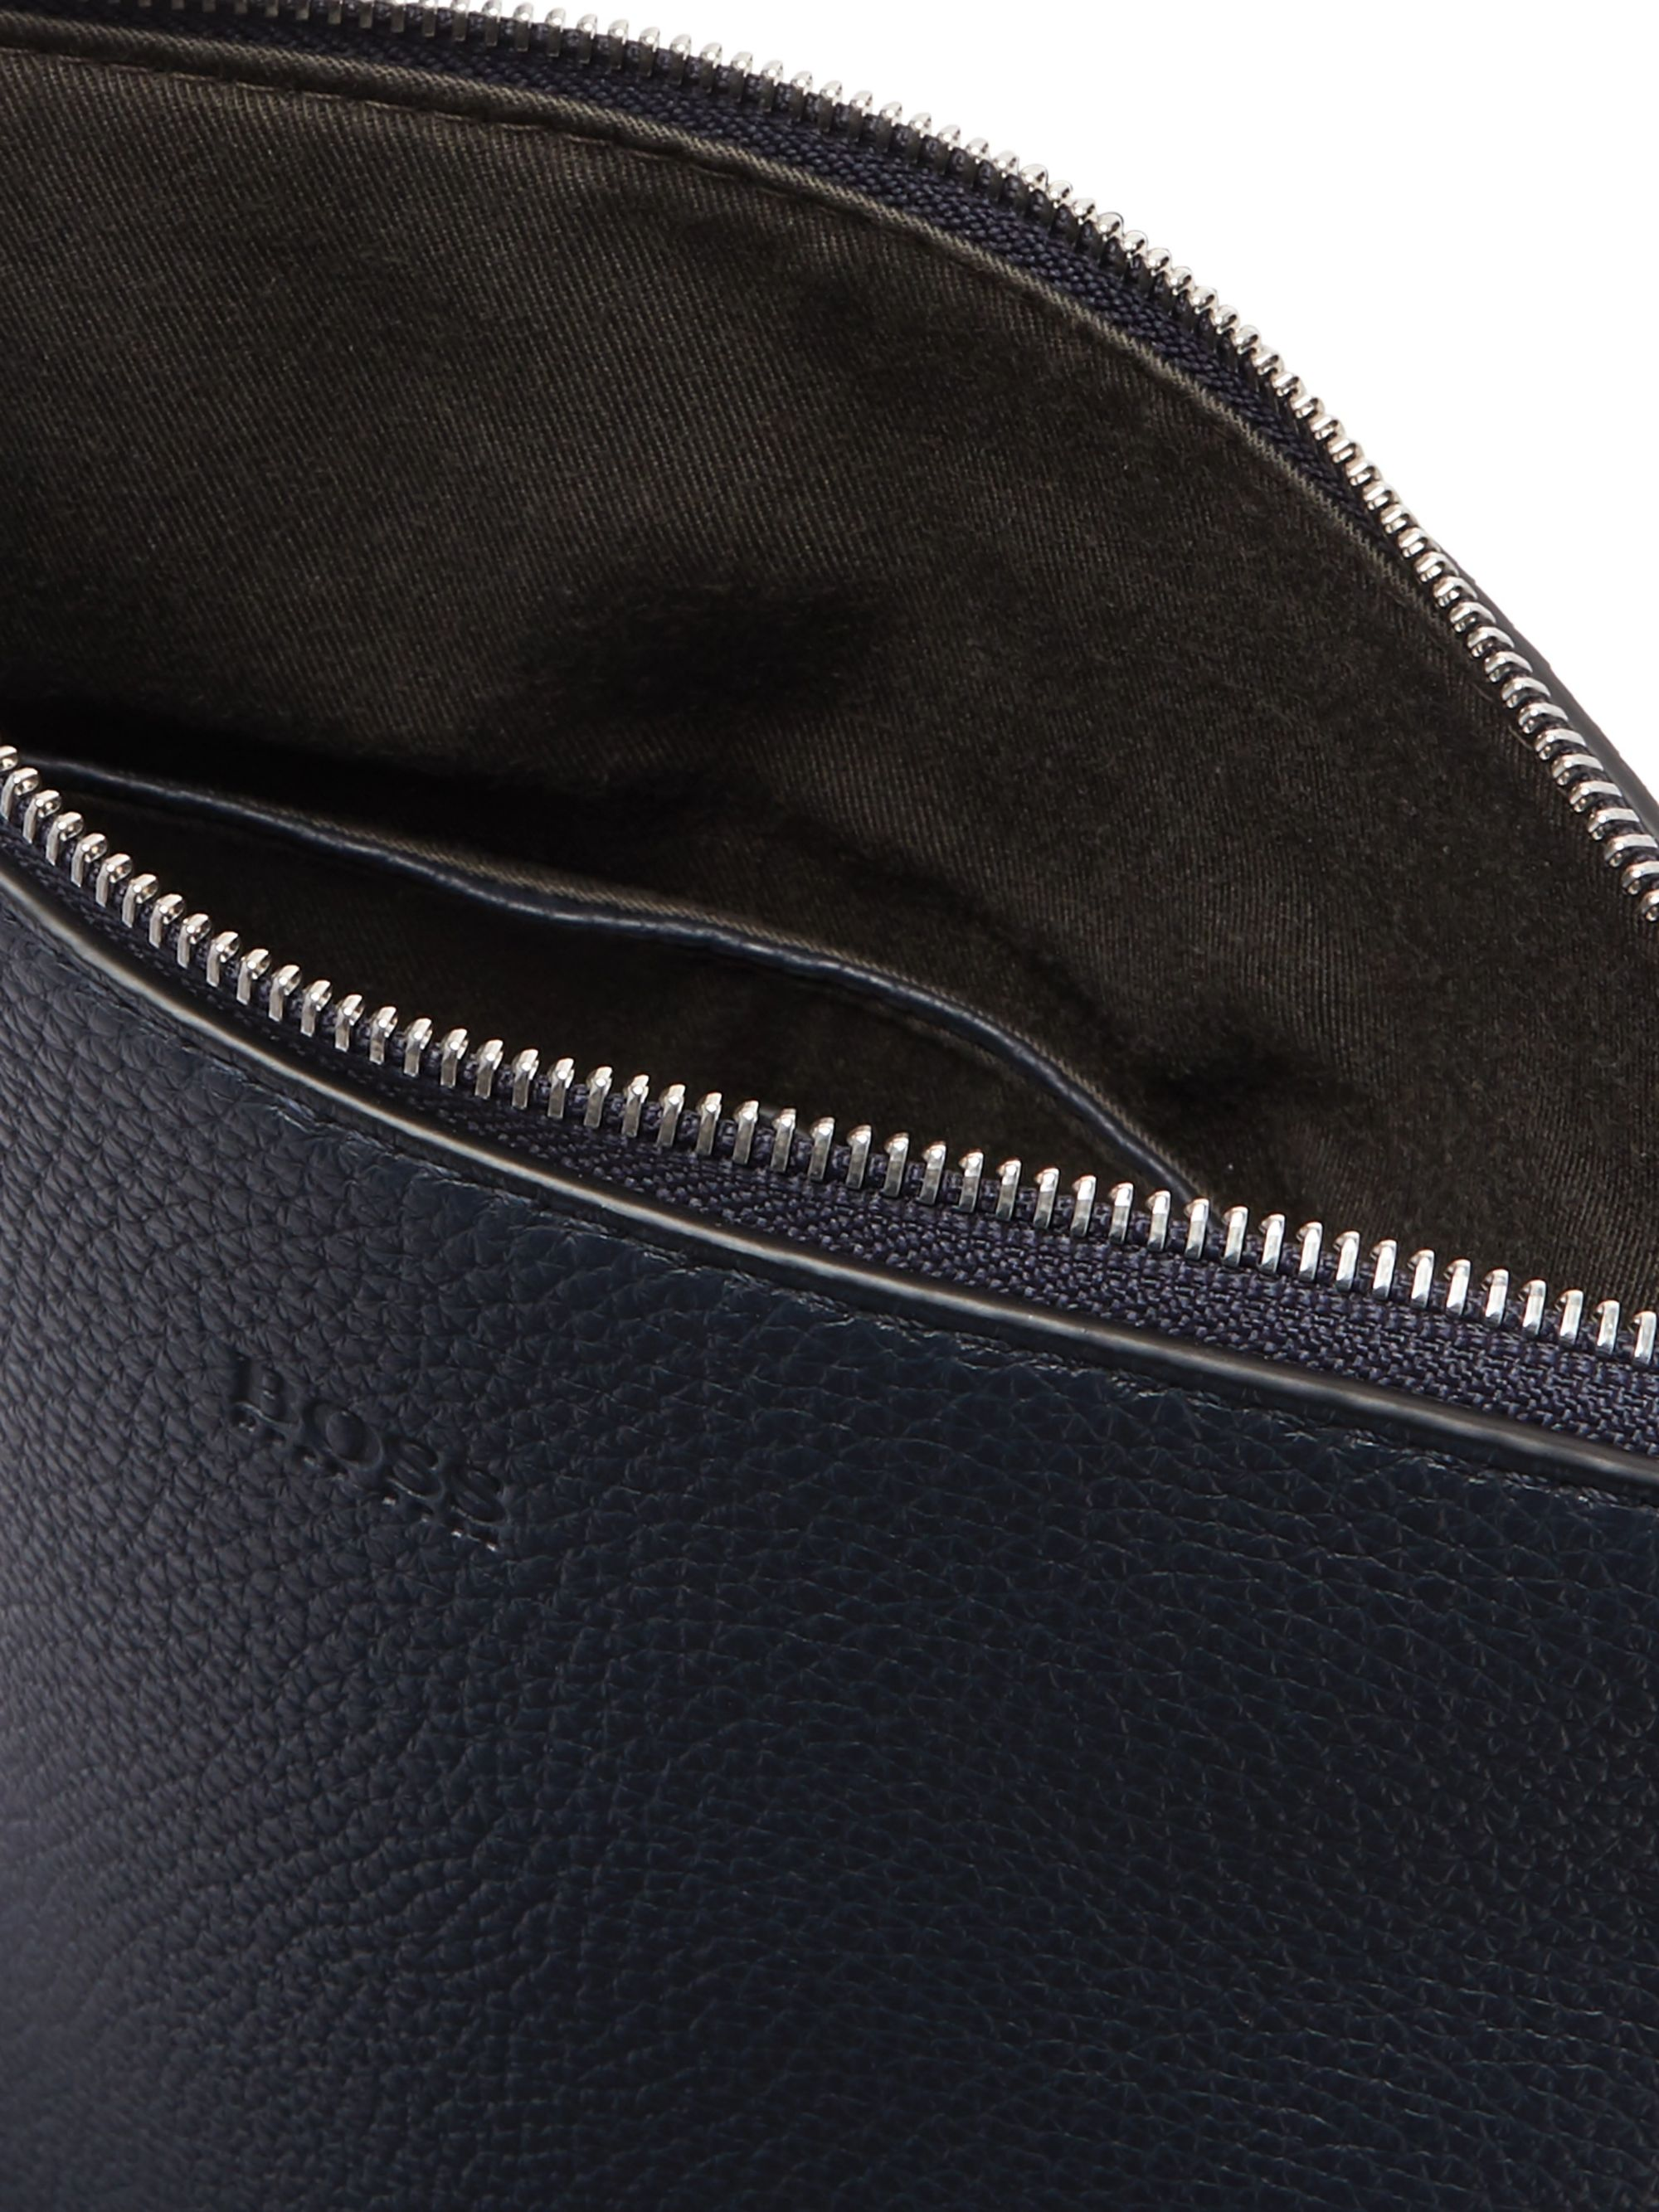 Hugo Boss Full-Grain Leather Messenger Bag